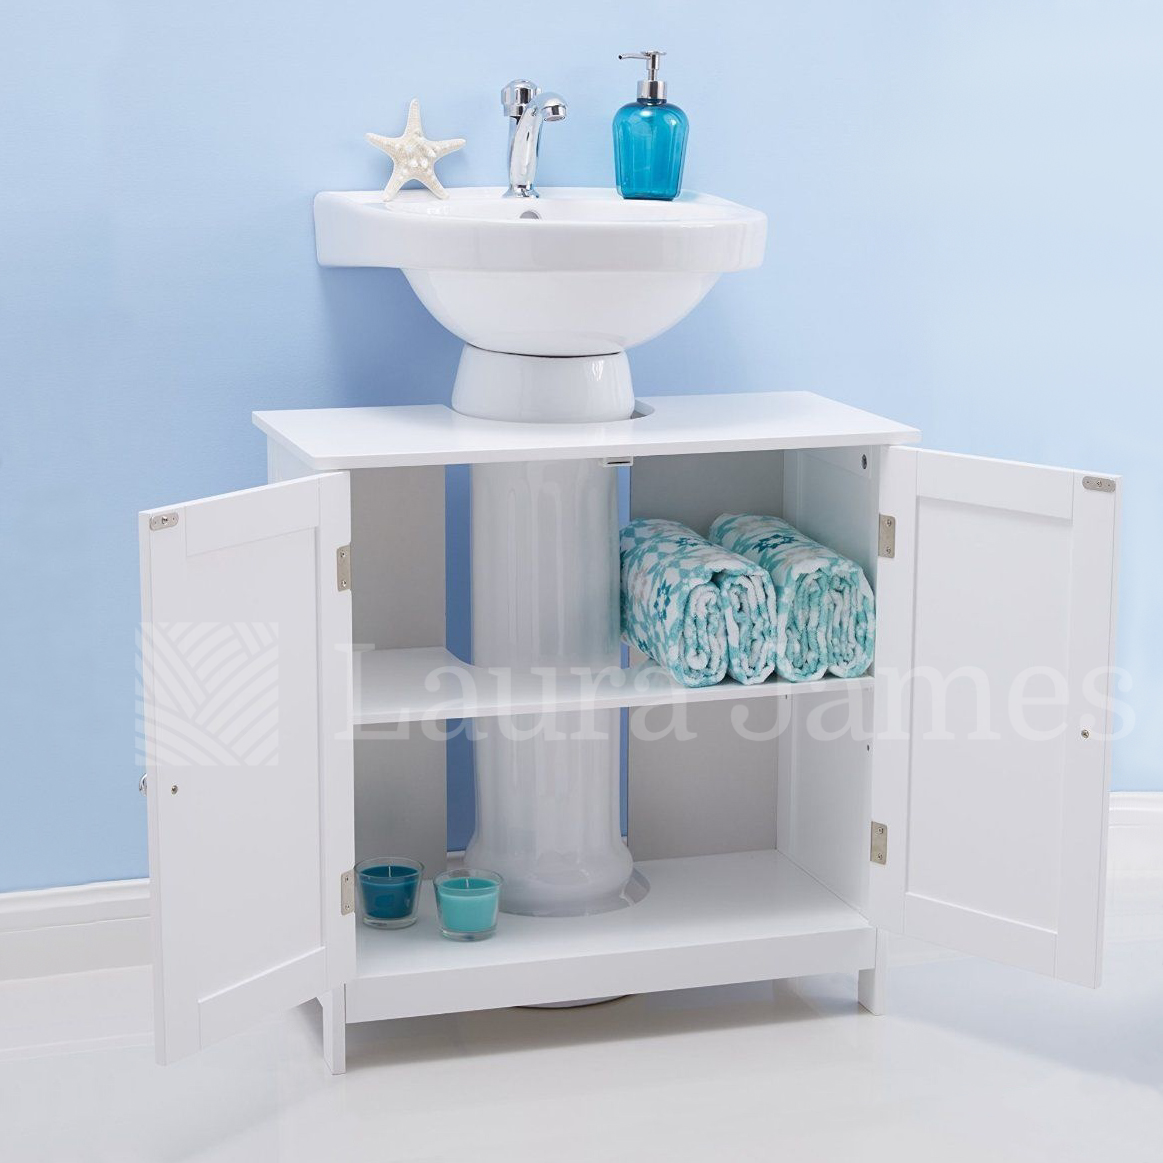 Under Sink Bathroom Cabinet Storage Unit Cupboard white | eBay